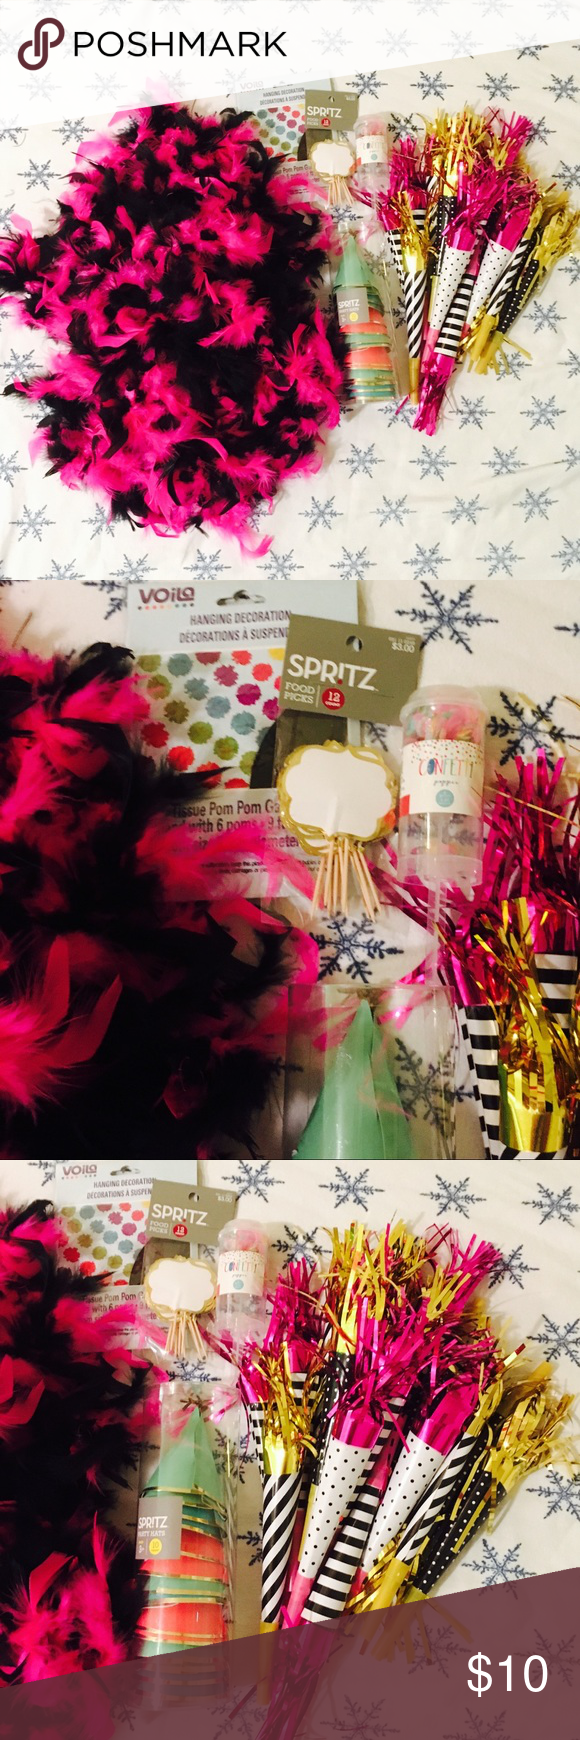 NYE or Girls Night Party favors! Spritz by Target! All new ...